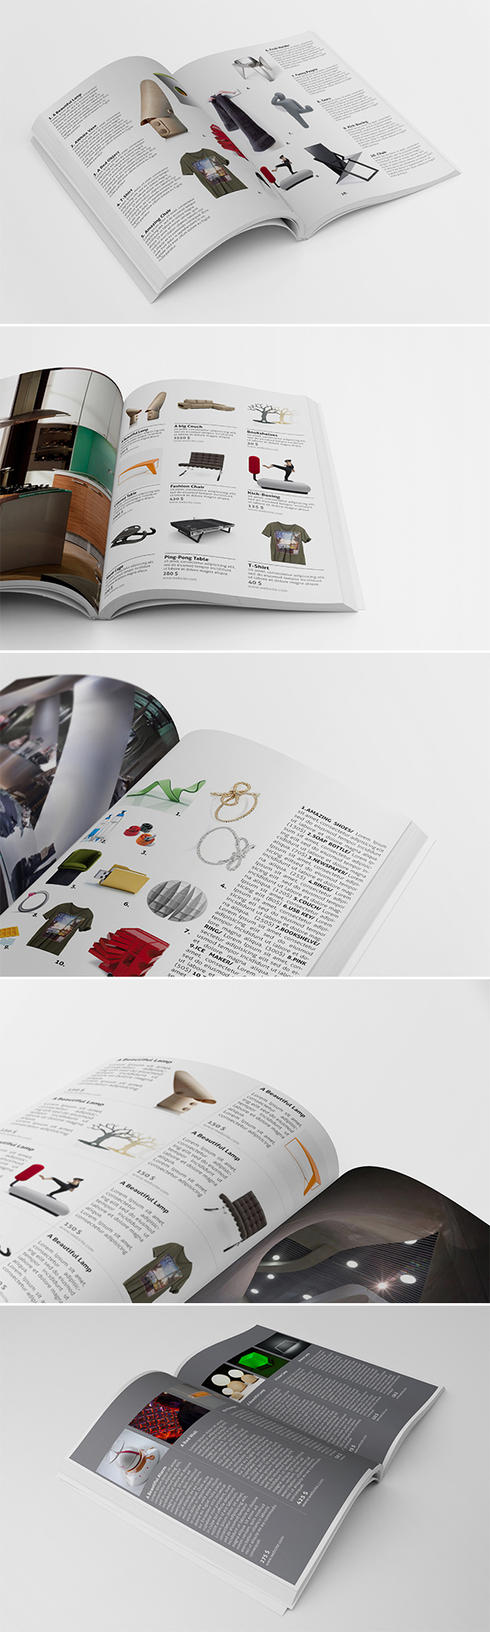 5 Magazine Advertising Templates 02 by andre2886